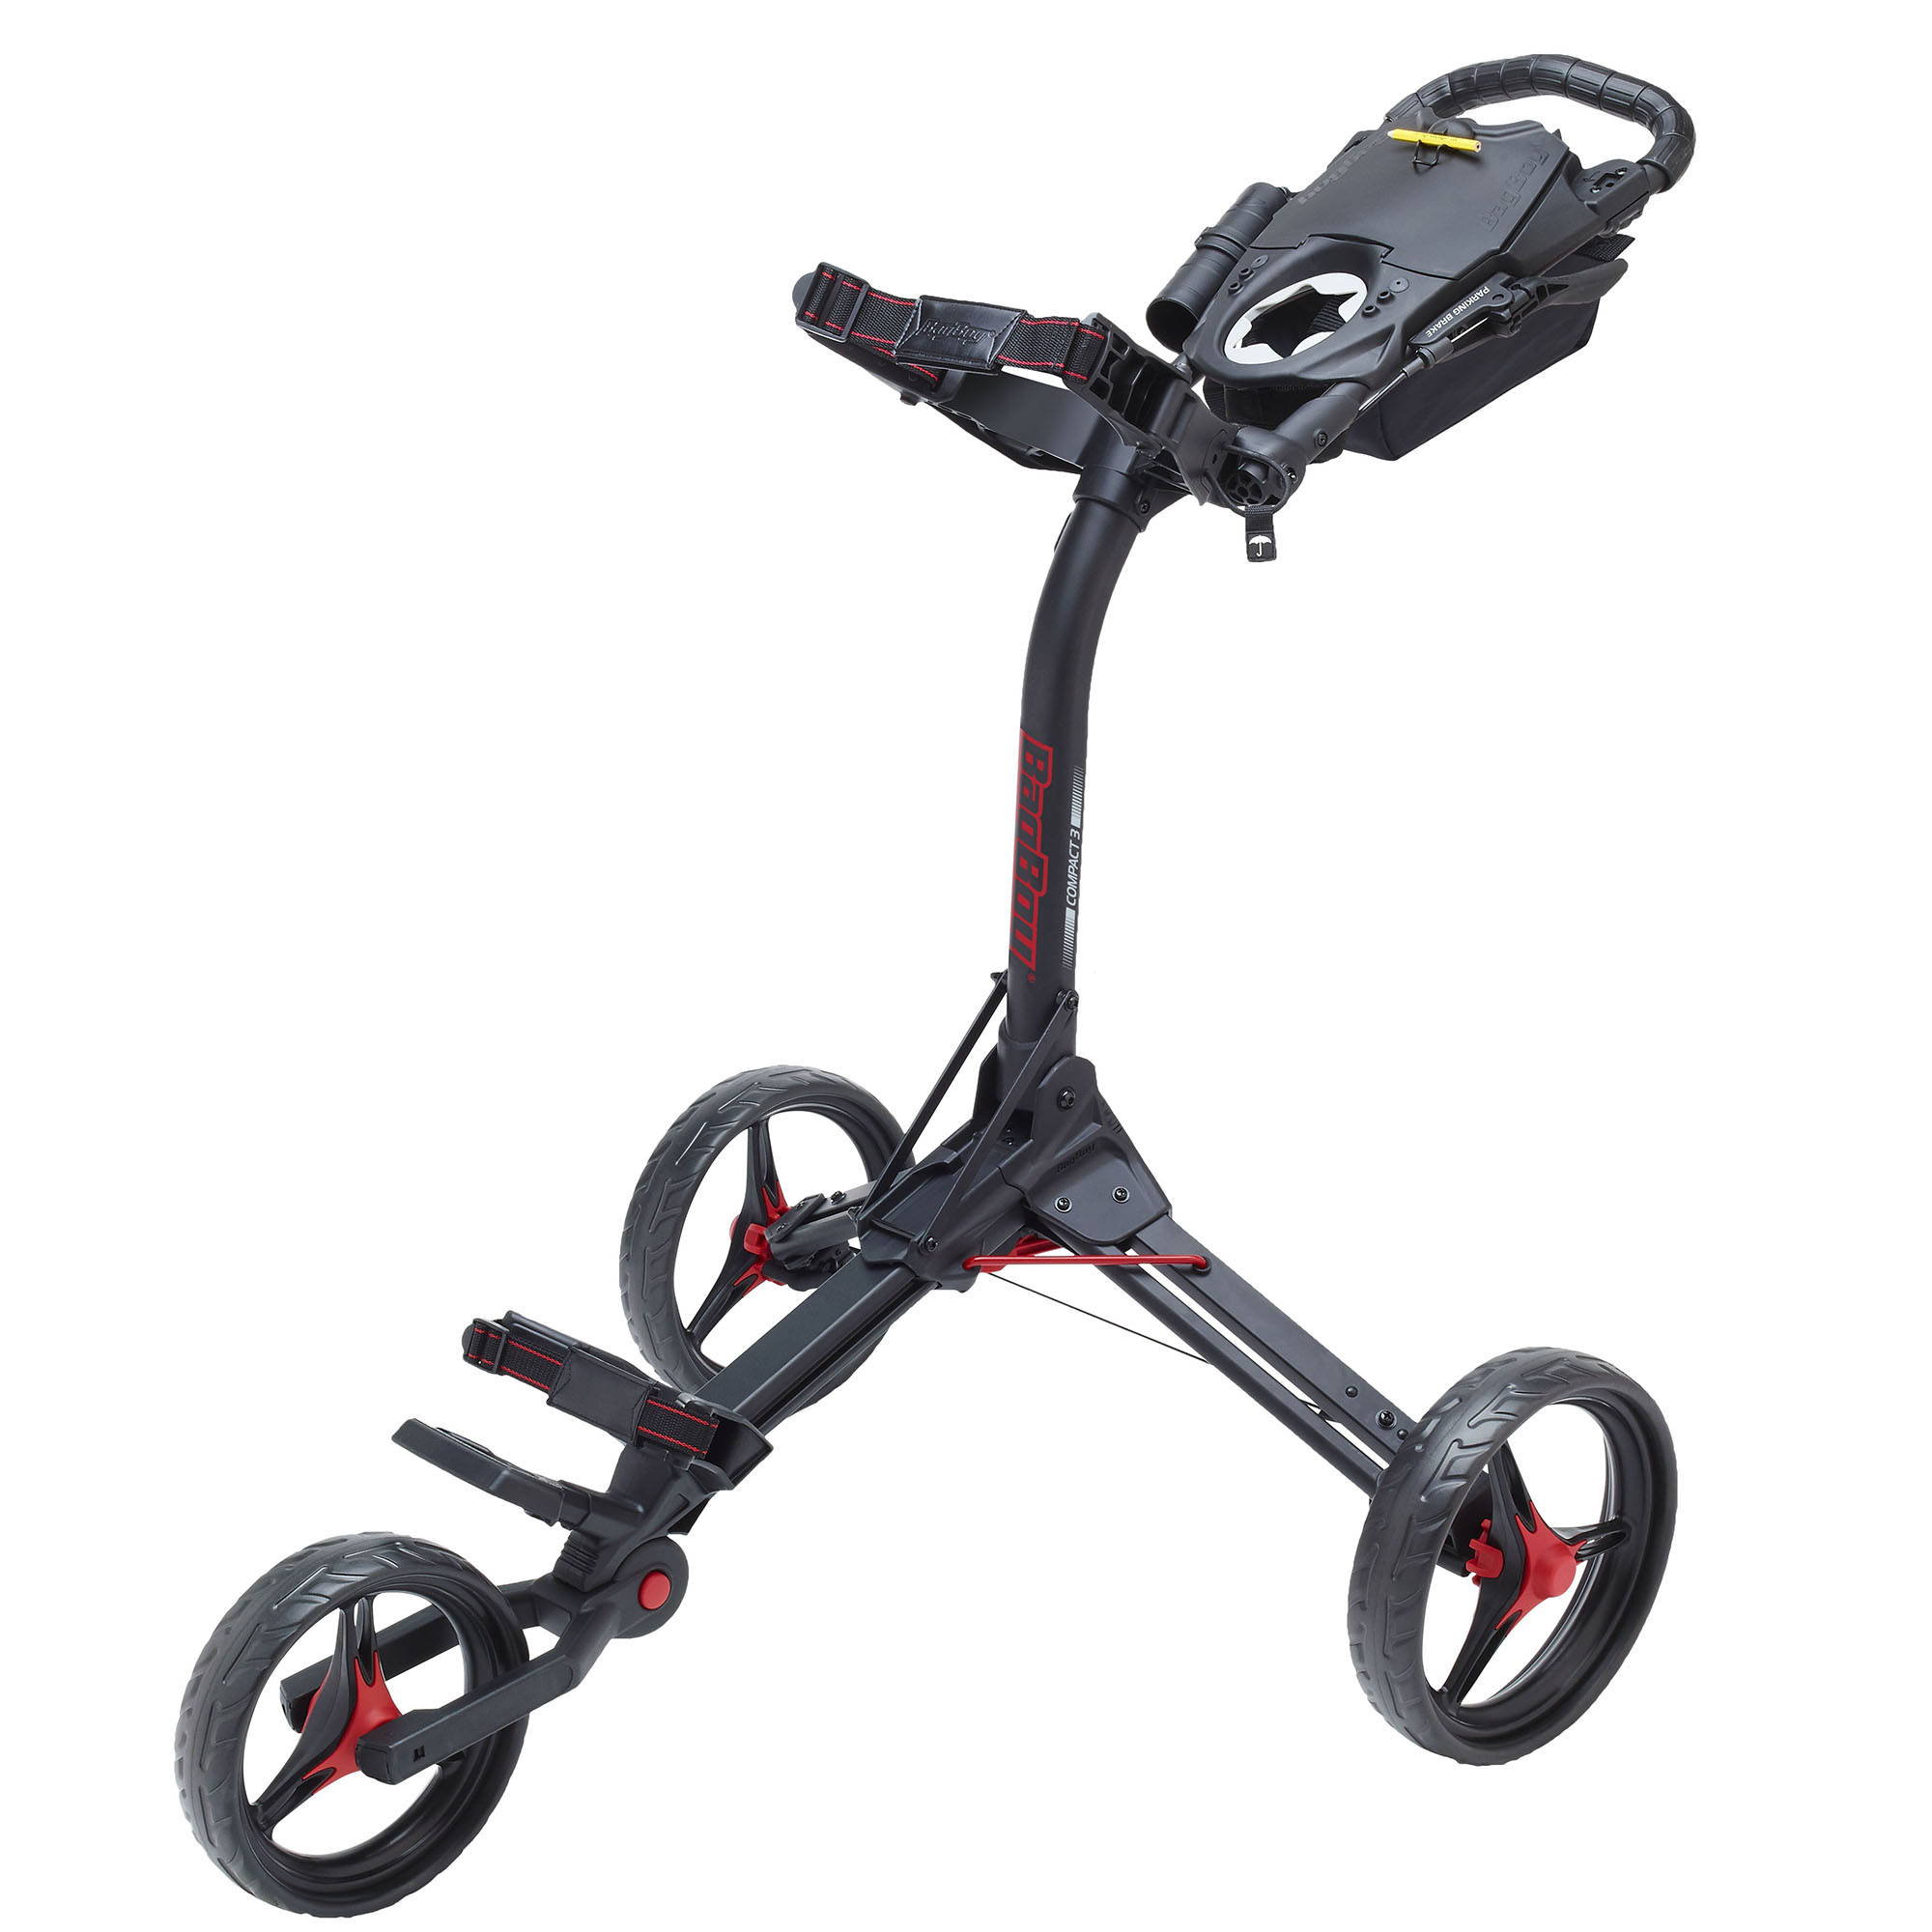 BagBoy Compact 3 Golf Trolley – Black/Red